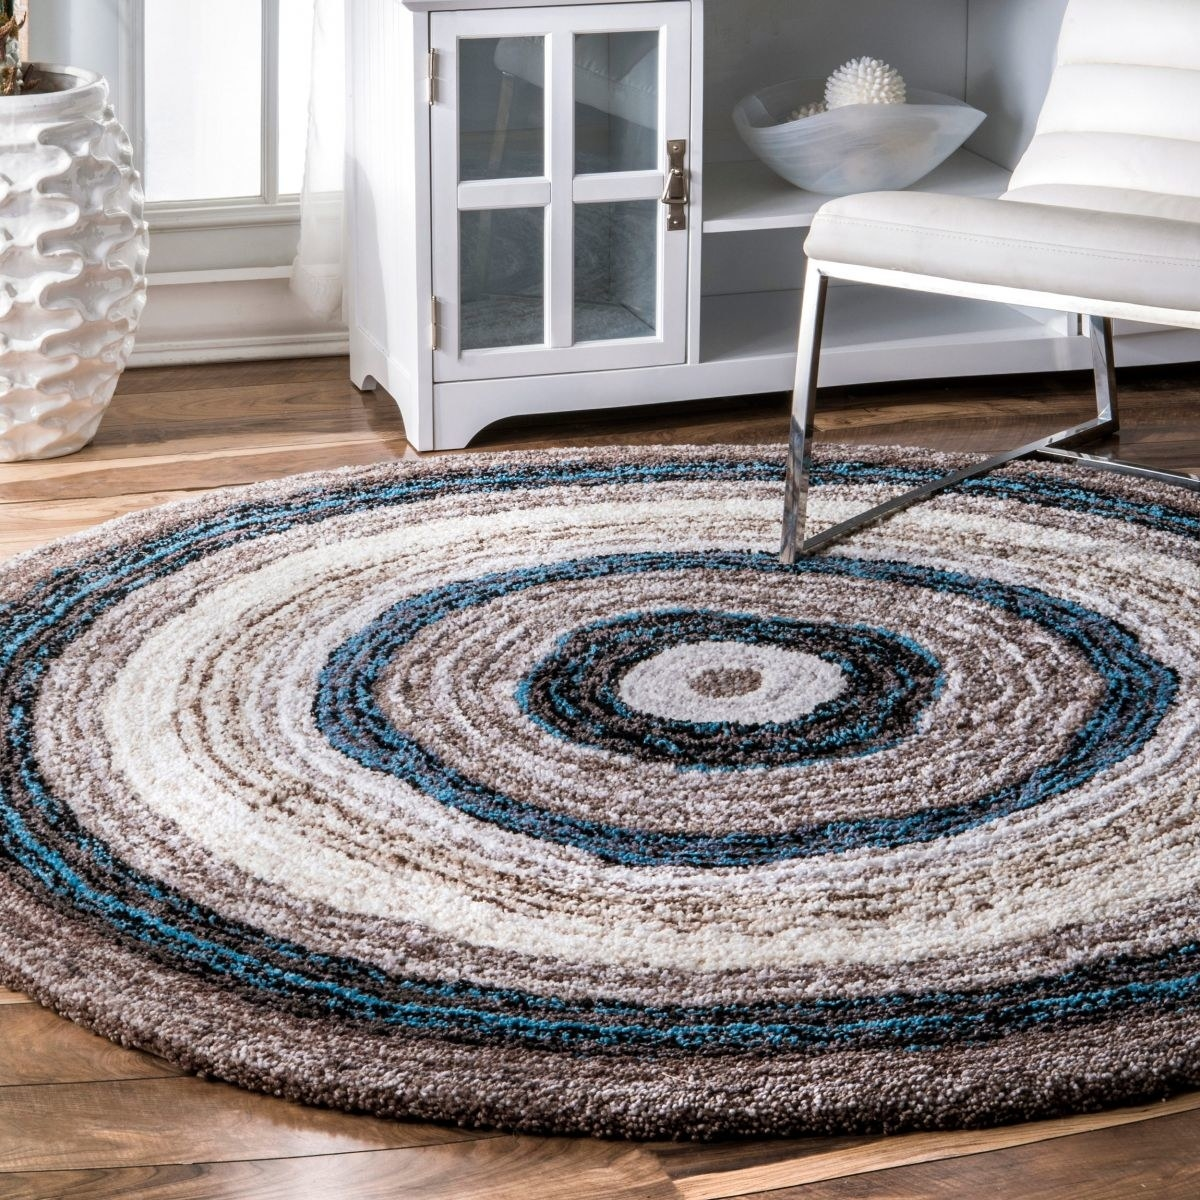 a circular shag rug with blue, white, tan, and brown designs in it